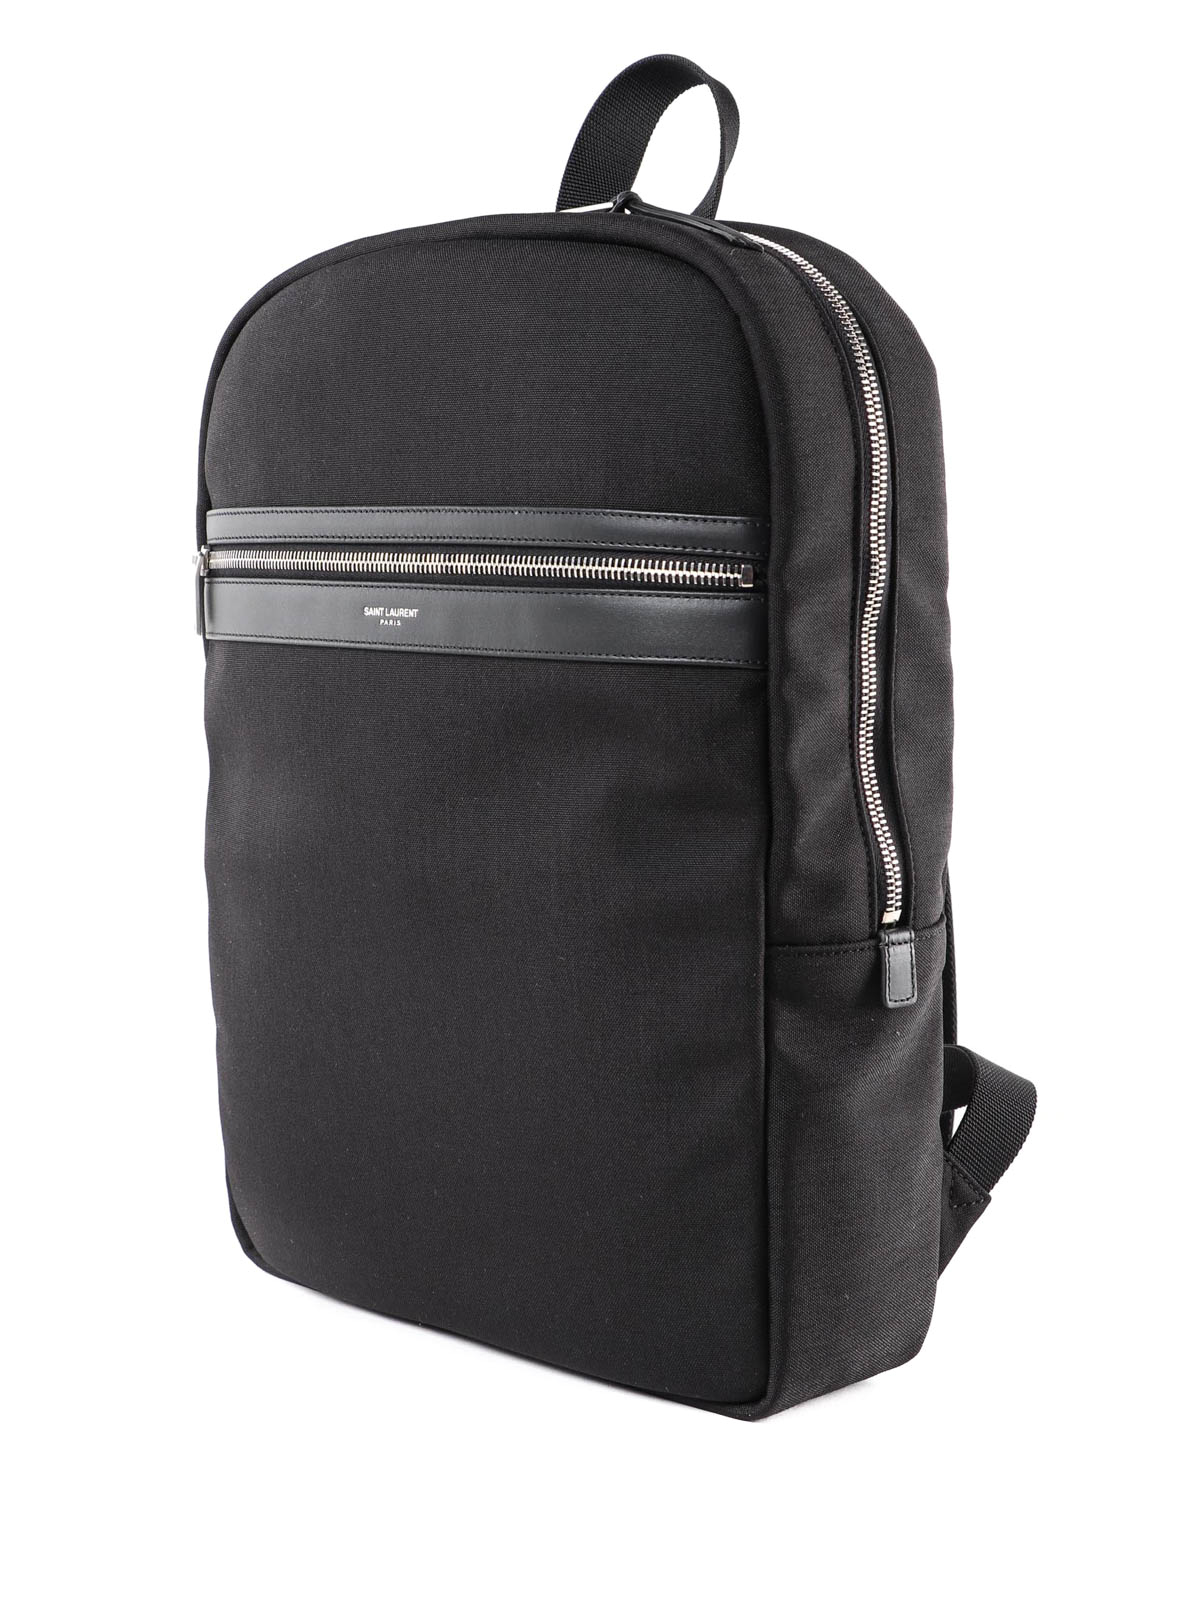 3cde2a1b49 SAINT LAURENT  backpacks online - City canvas and leather backpack